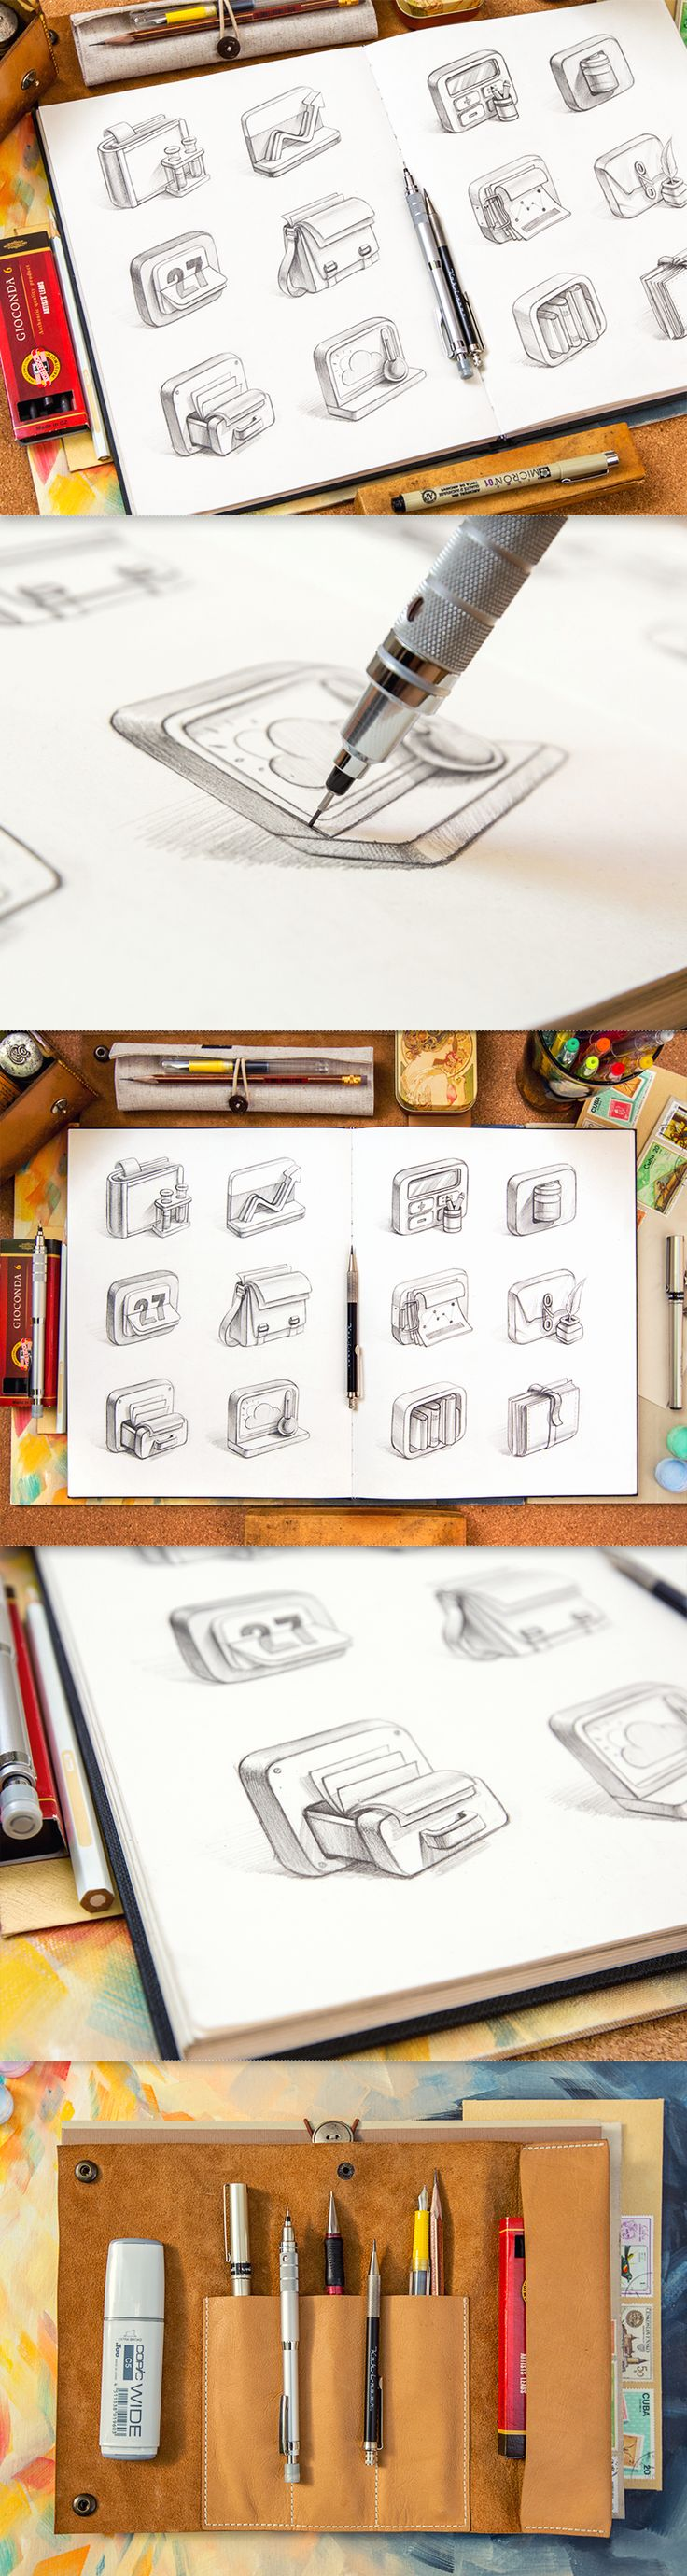 Dribbble - Icons_-_real_size.jpg by Mike | Creative Mints